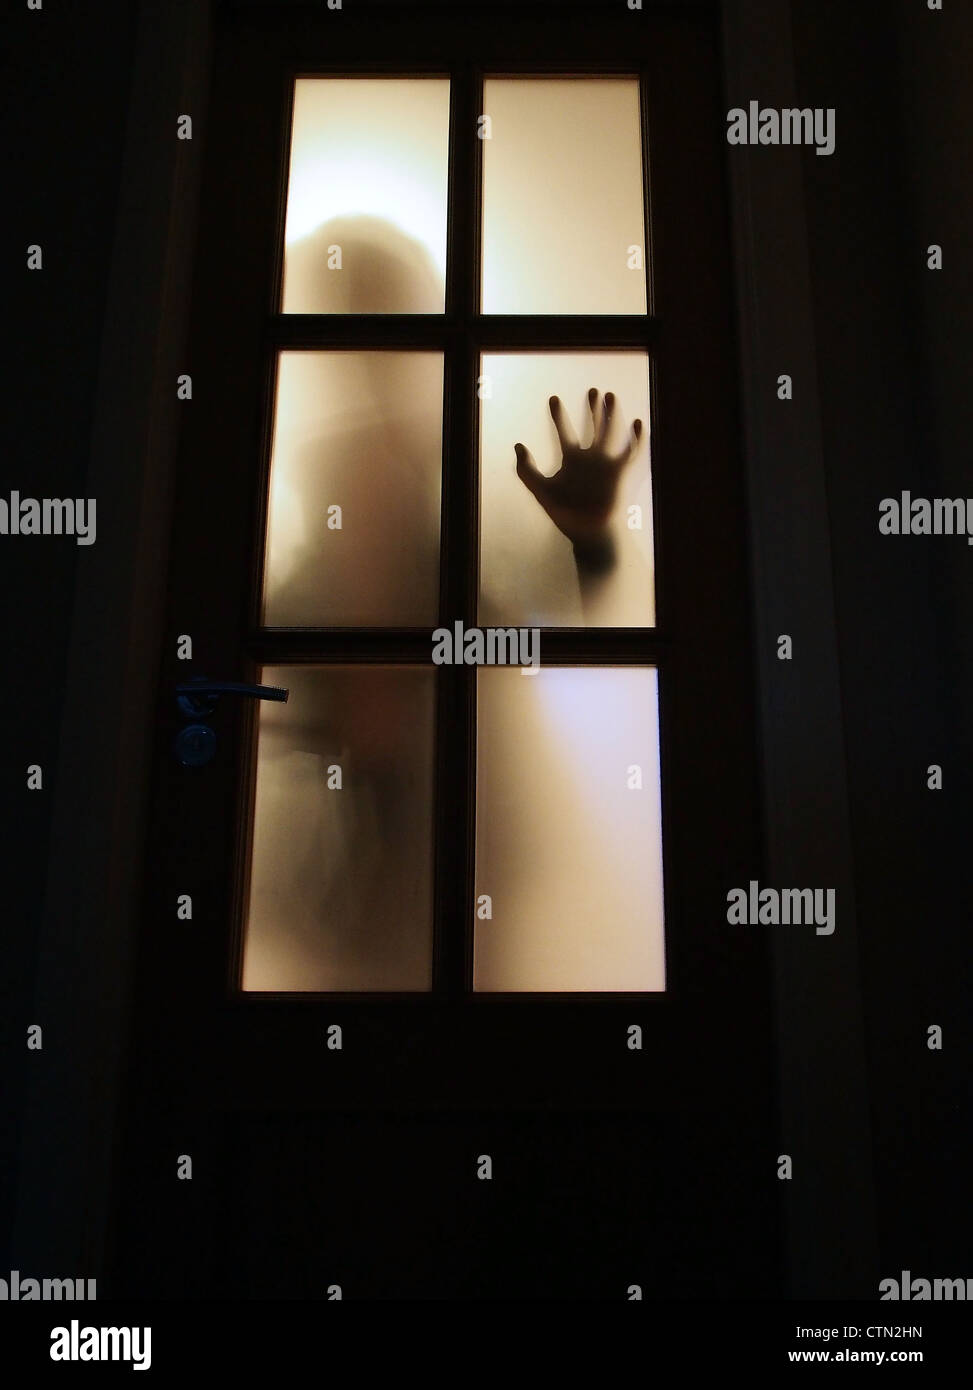 Silhouette of hand on window. - Stock Image